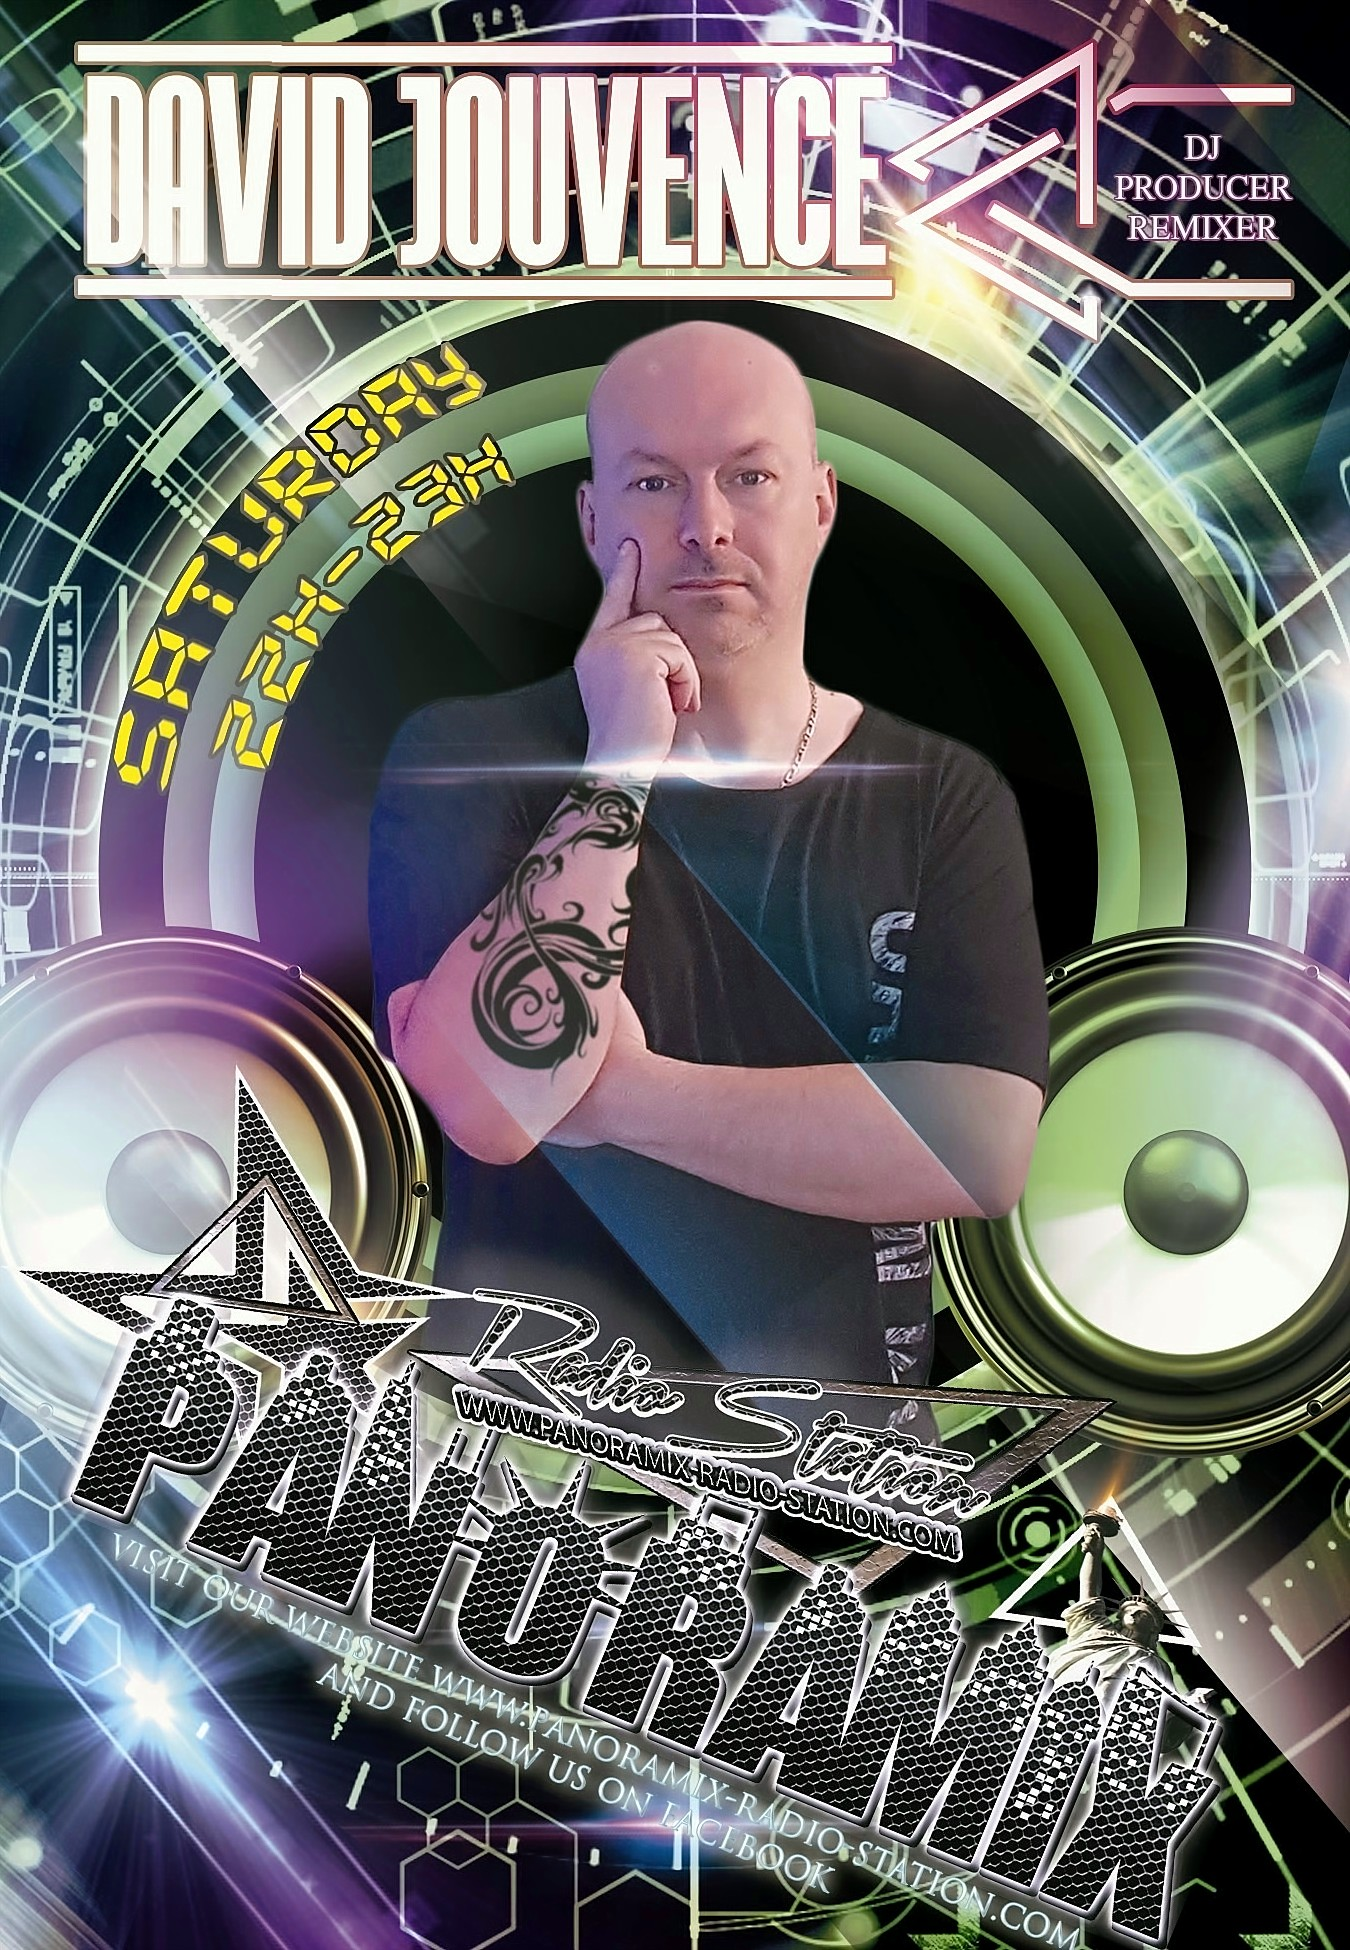 http://panoramix-radio-station.com/wp-content/uploads/2018/04/DAVID-JOUVENCE-Flyer-Panoramix-Radio.jpg